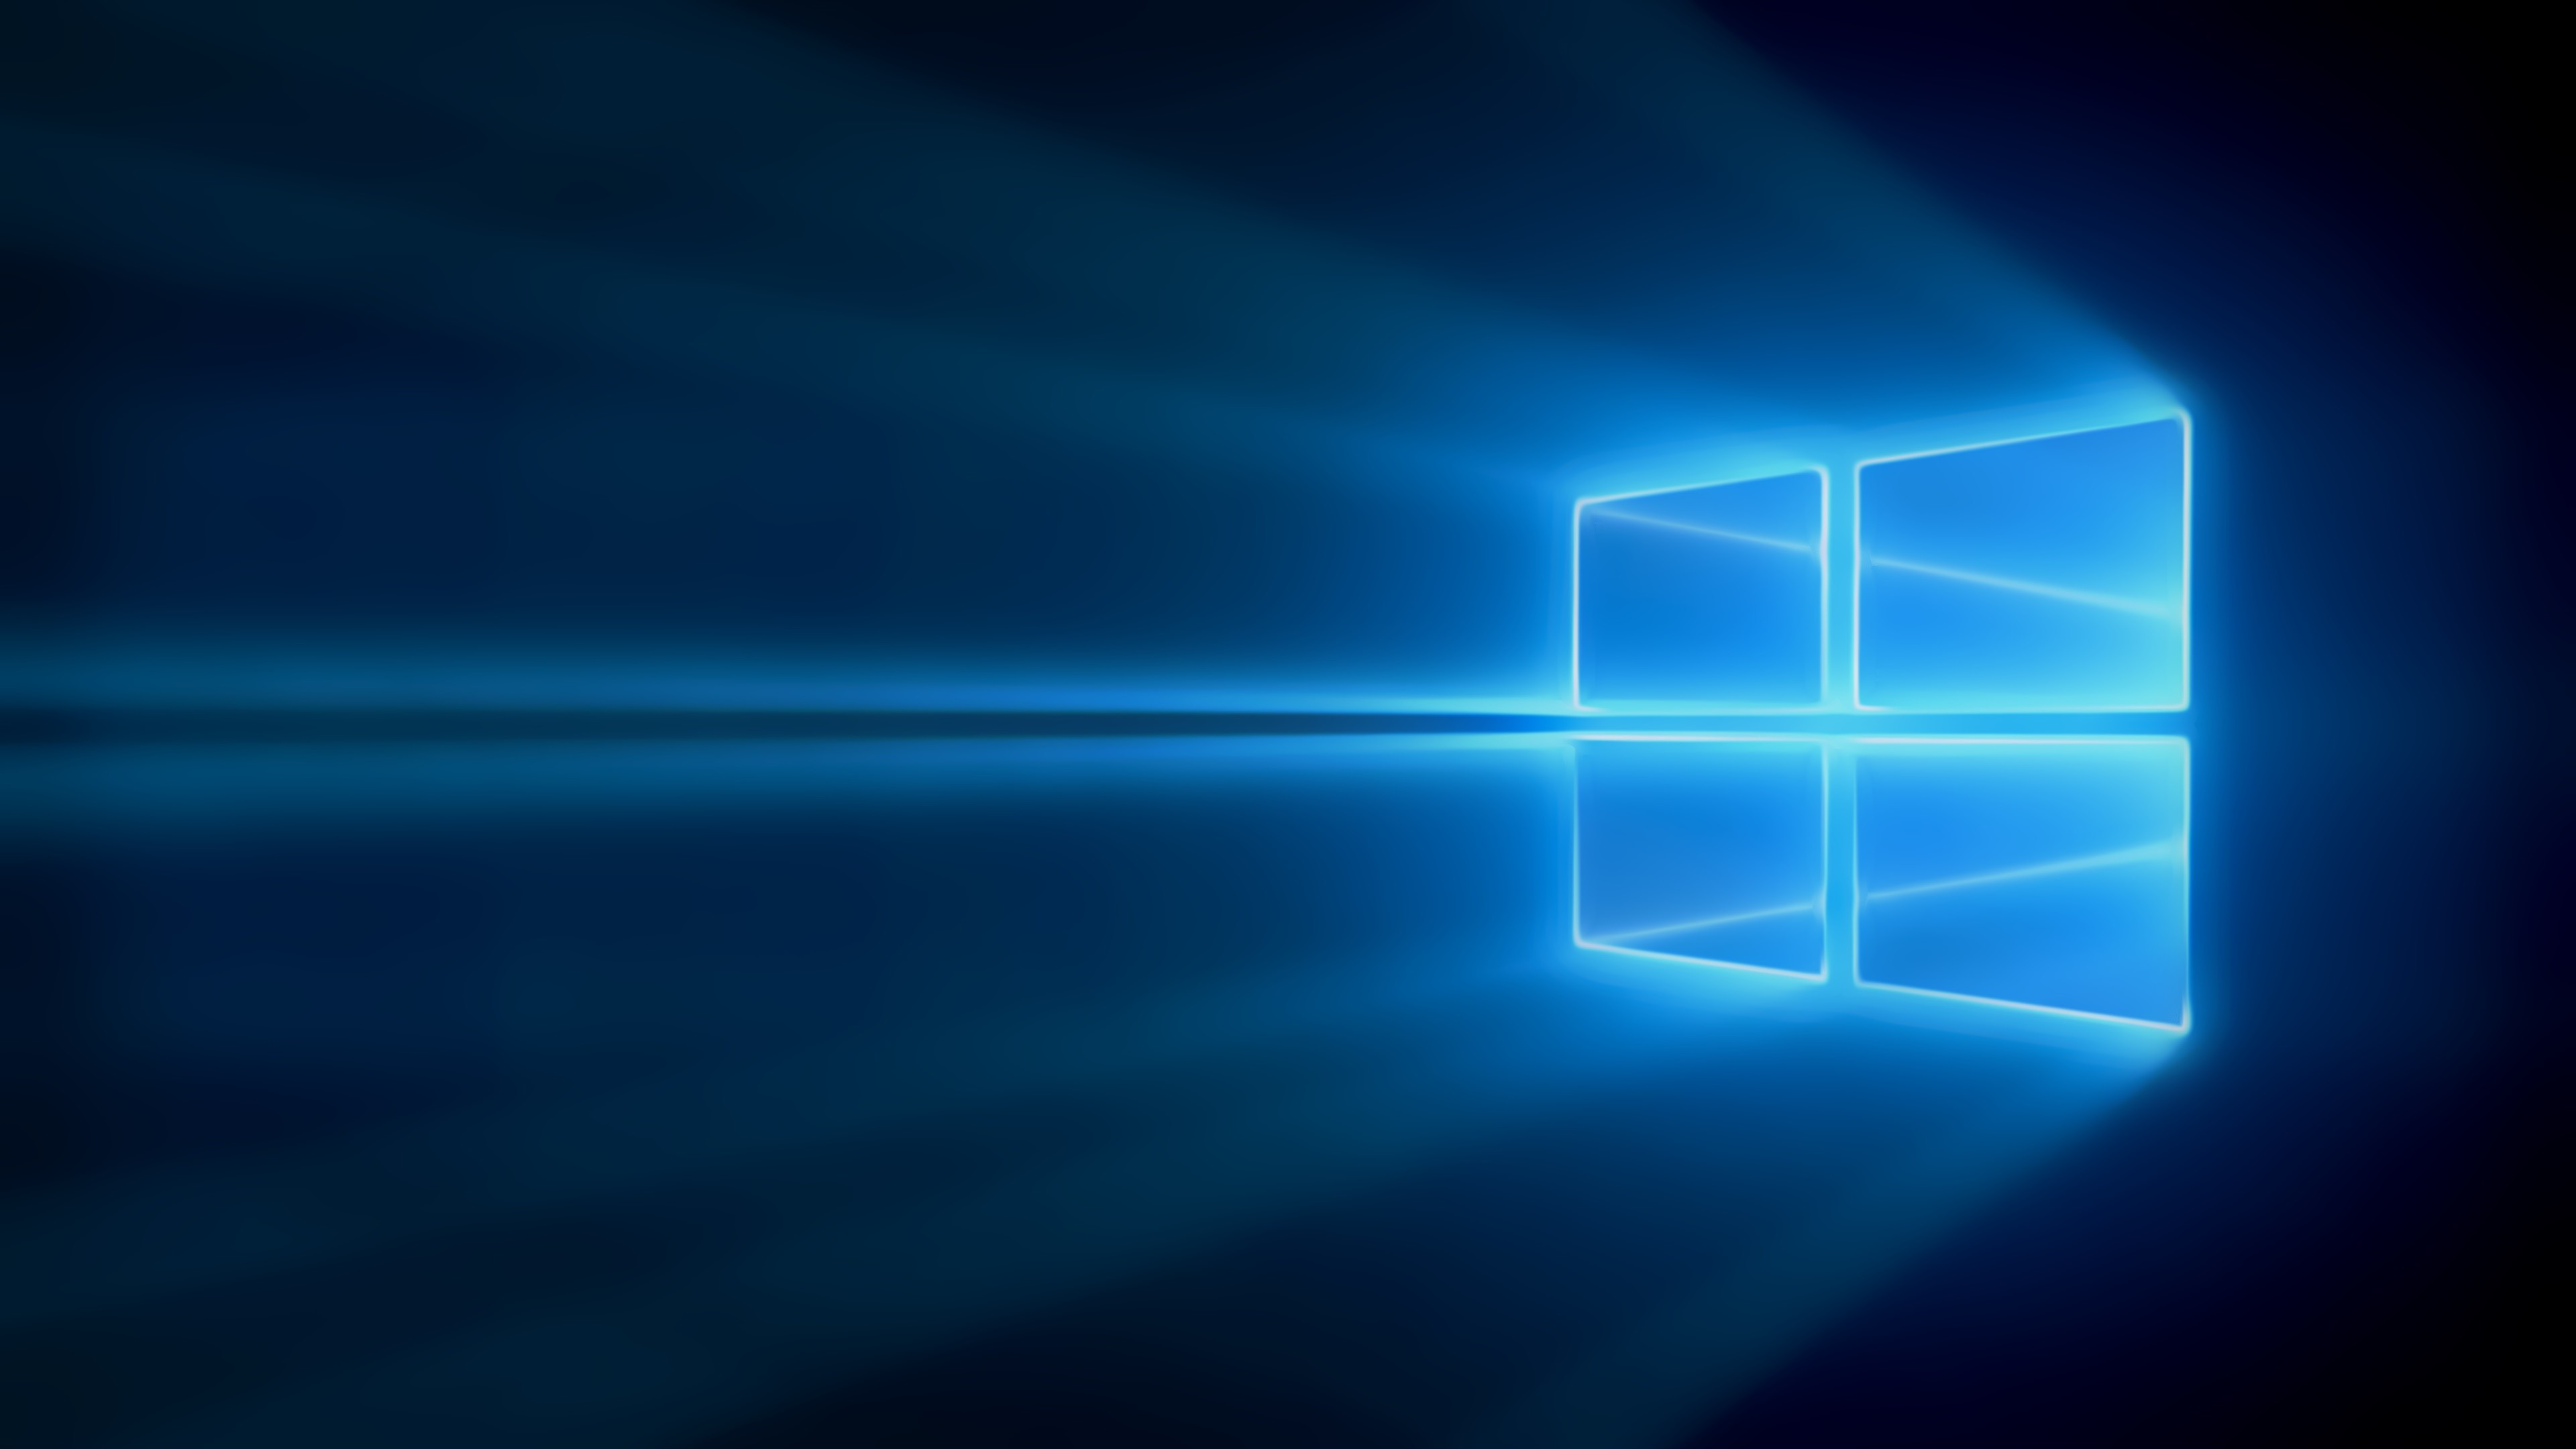 Effects Master Creates Downloadable Version of Windows 10 Wallpaper 3840x2160